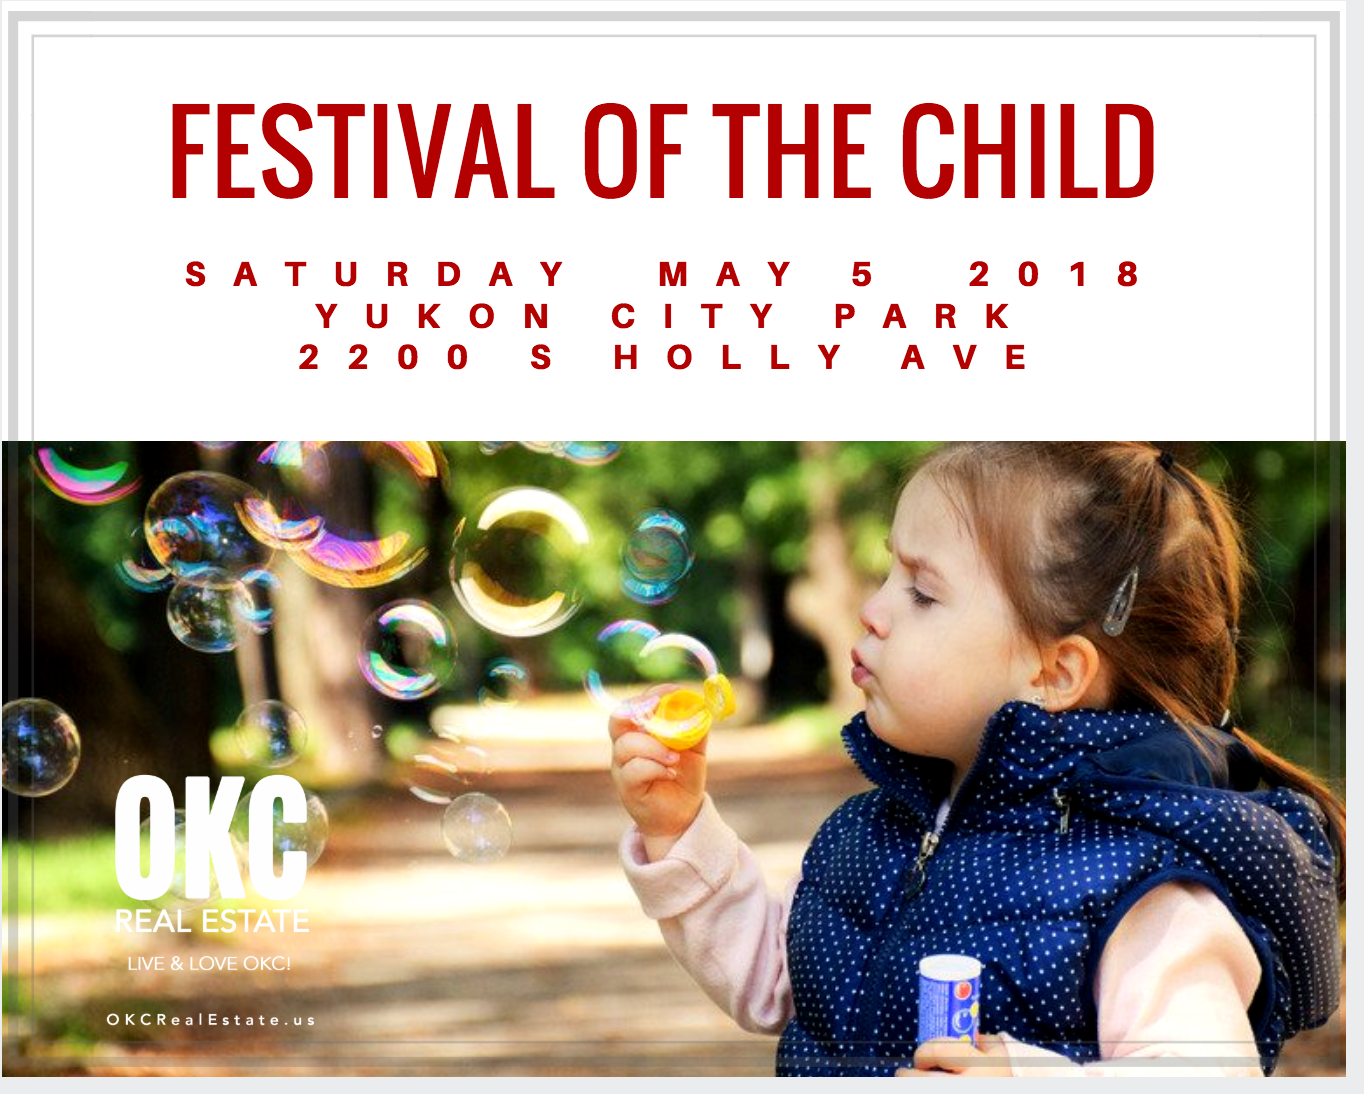 GO LOCAL - FESTIVAL OF THE CHILD in YUKON - fun & activities for all ages